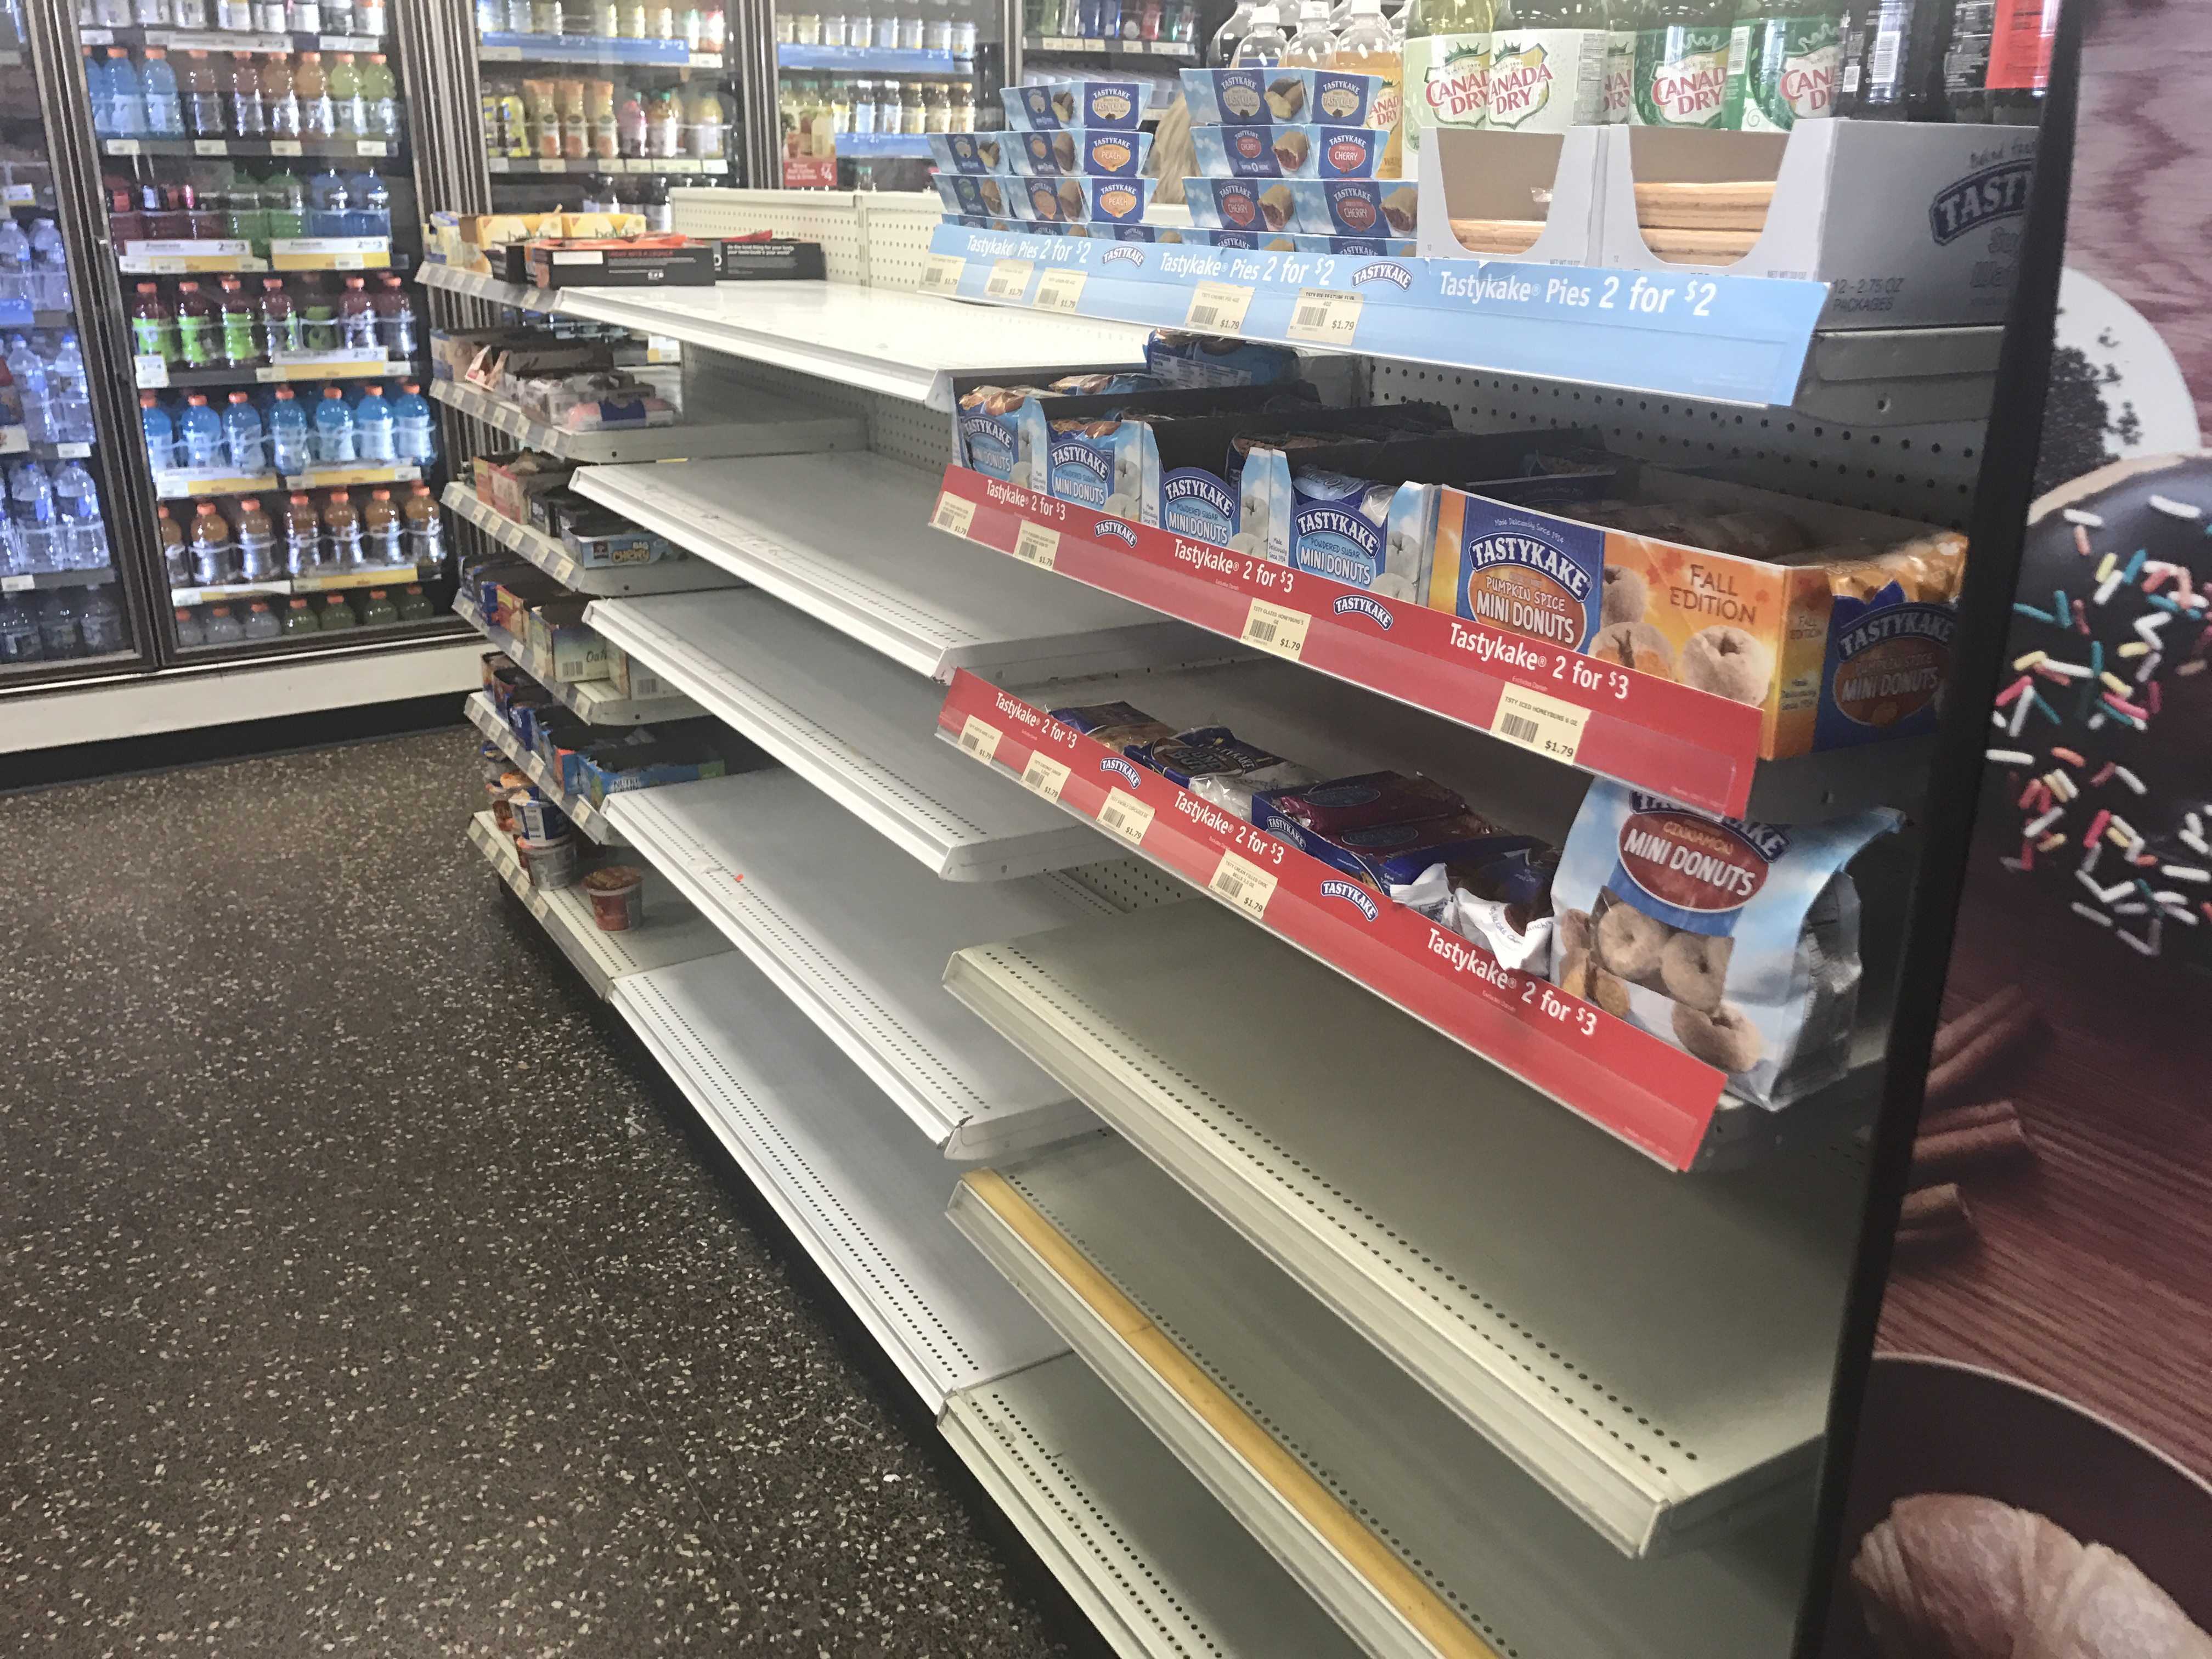 The Ventnor Heights Wawa was closing for good.